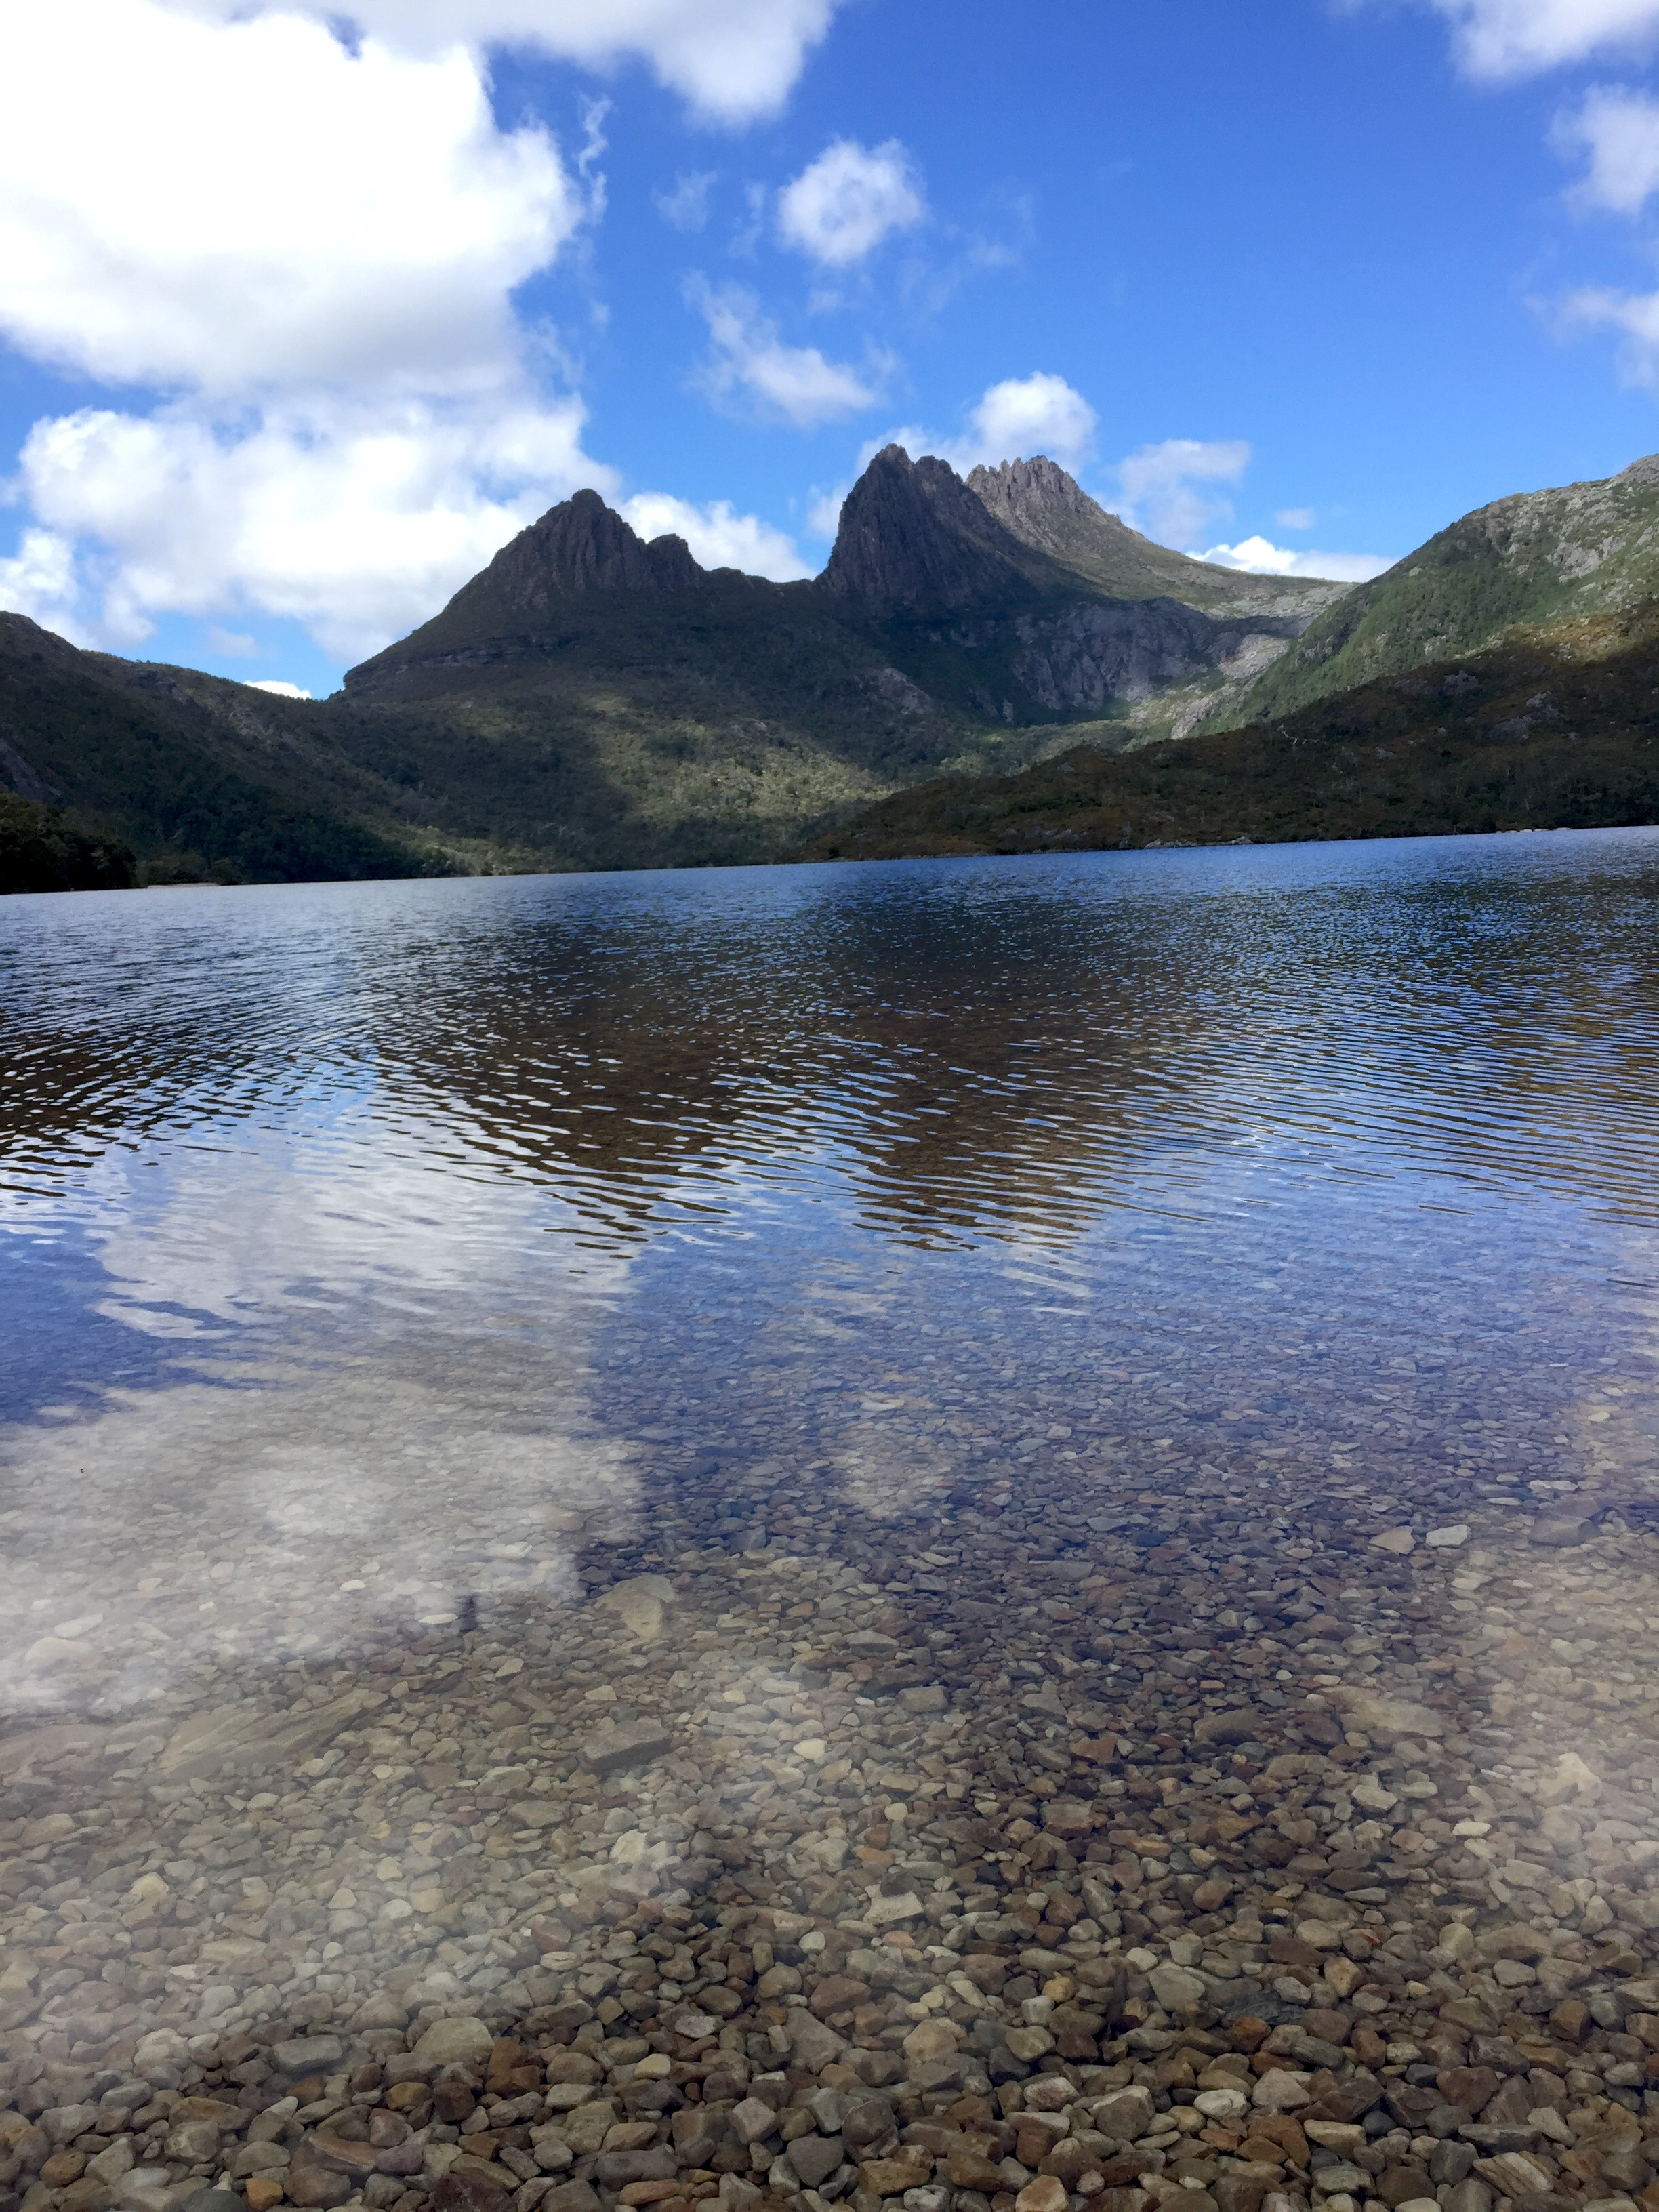 The crystalline waters of Dove Lake, at the base of Cradle Mountain, Tasmania.